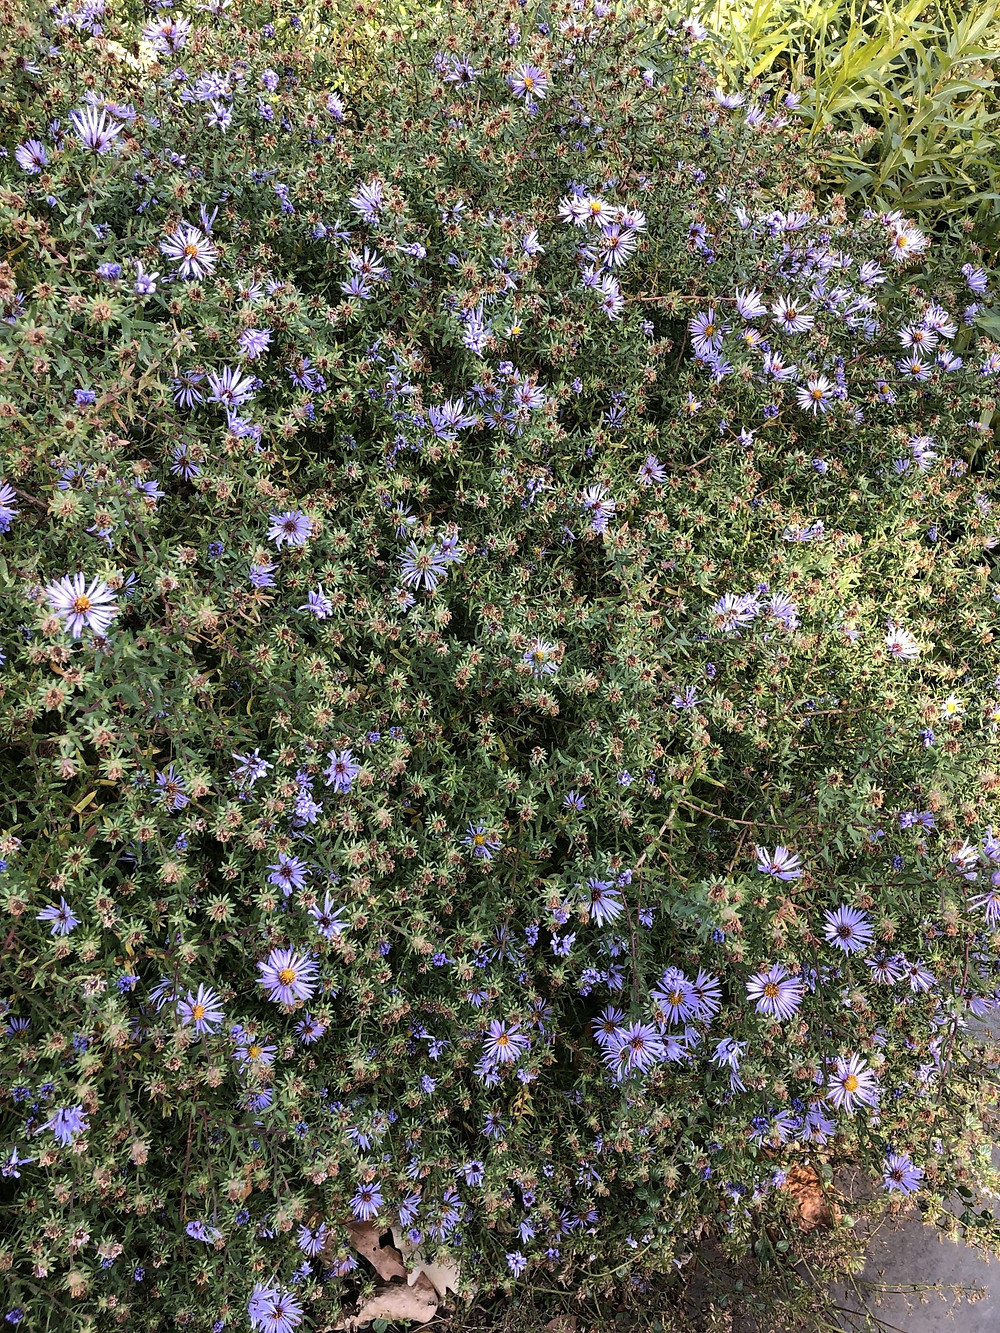 Native Plants: Blue Aster for Maryland and Virginia and Chesapeake Bay Area